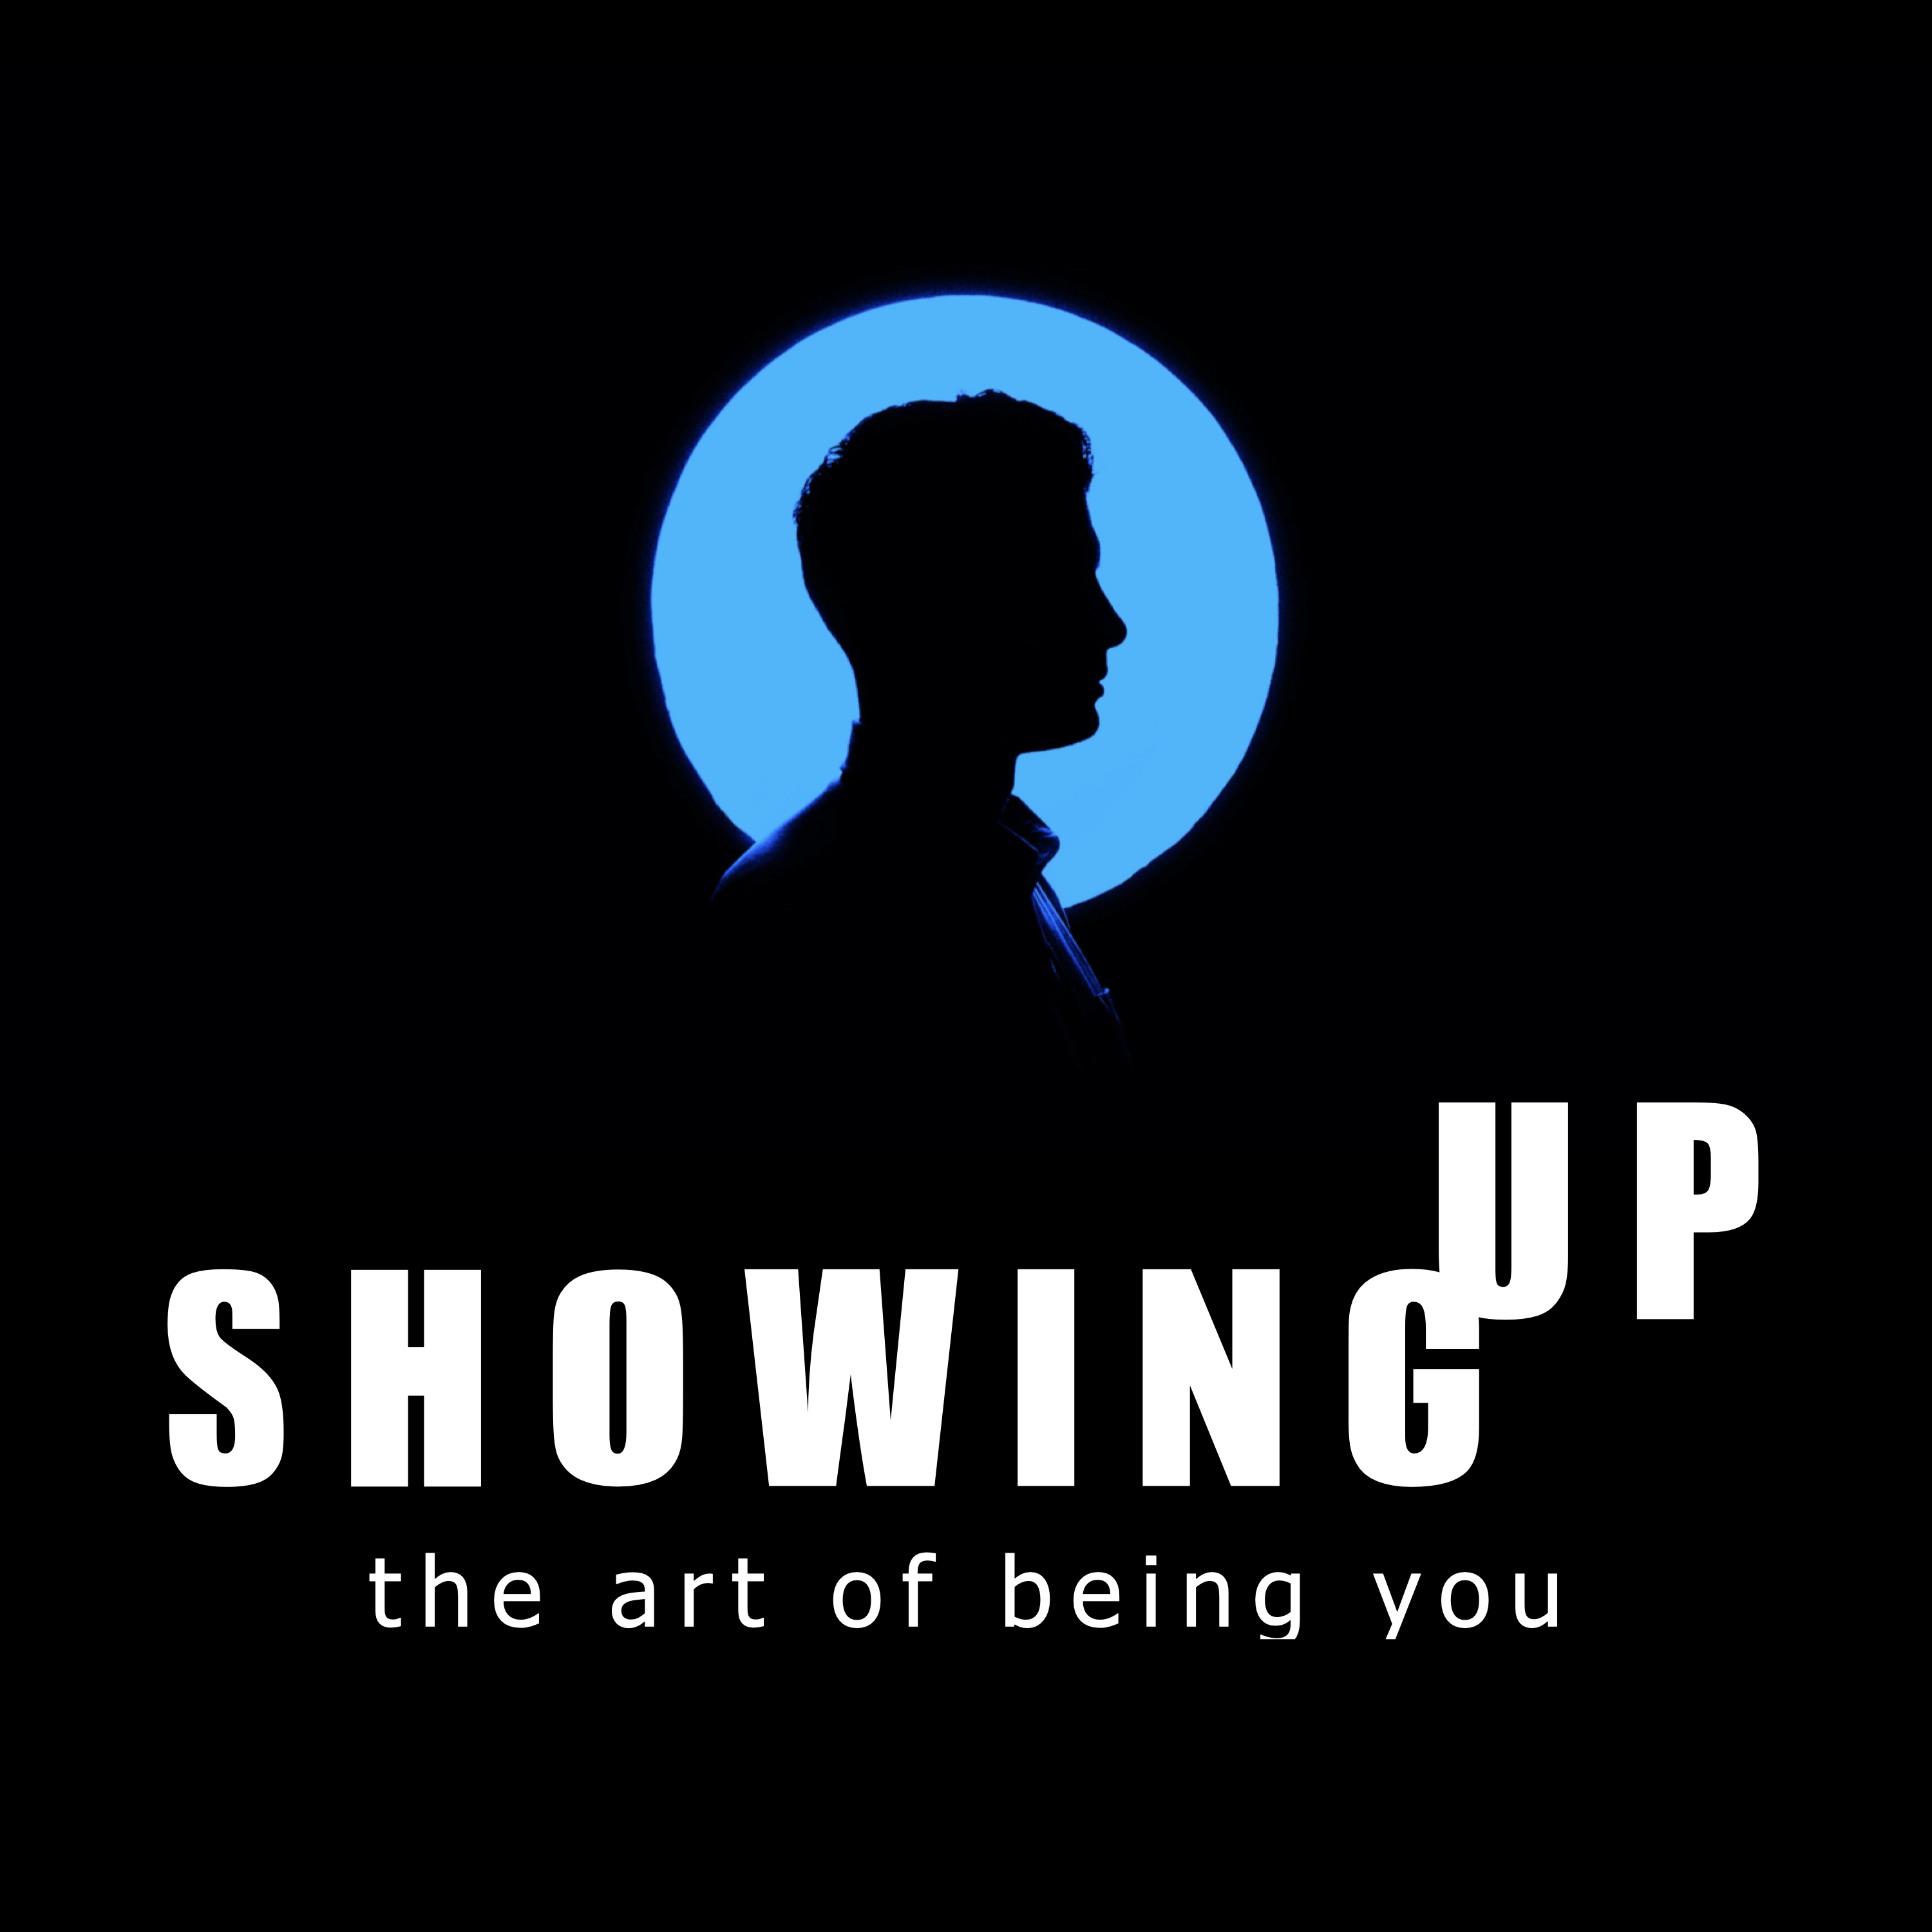 Ep 28: Are you a Christian? show art